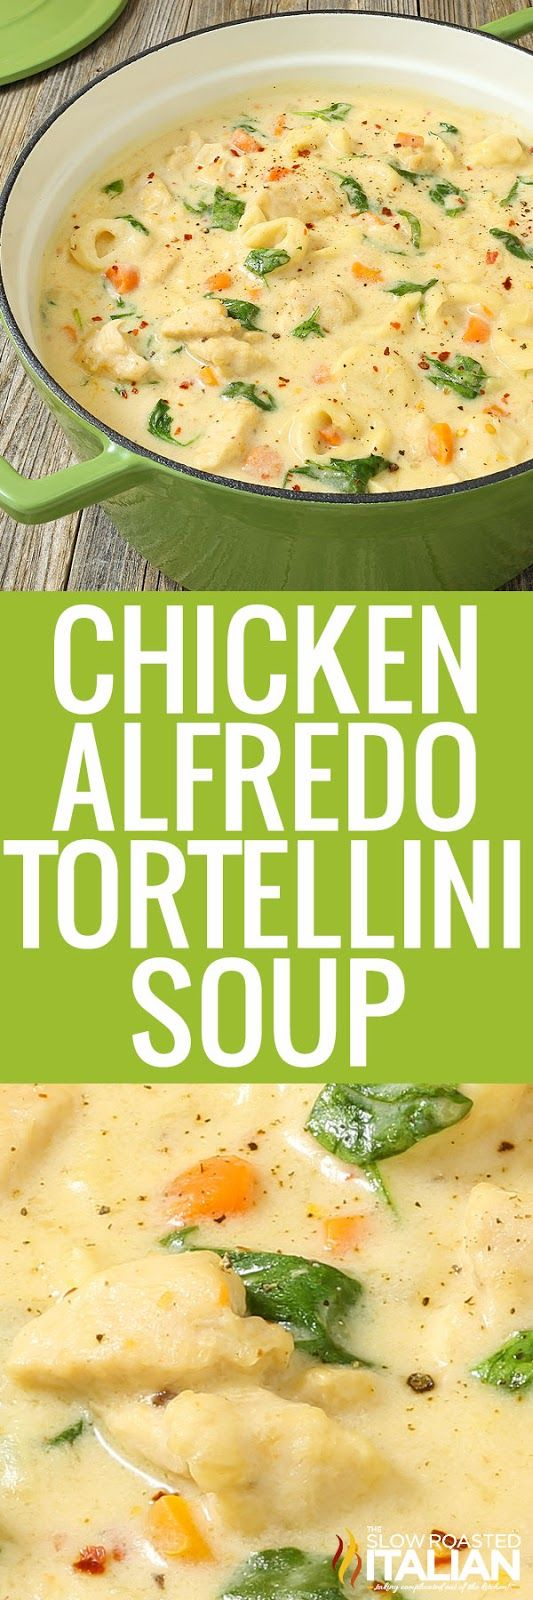 Chicken Alfredo Tortellini Soup is like your favorite chicken Alfredo recipe with vegetables in a rich and velvety soup. It is warm and comforting and utterly happy-dance inducing! #chickenalfredo